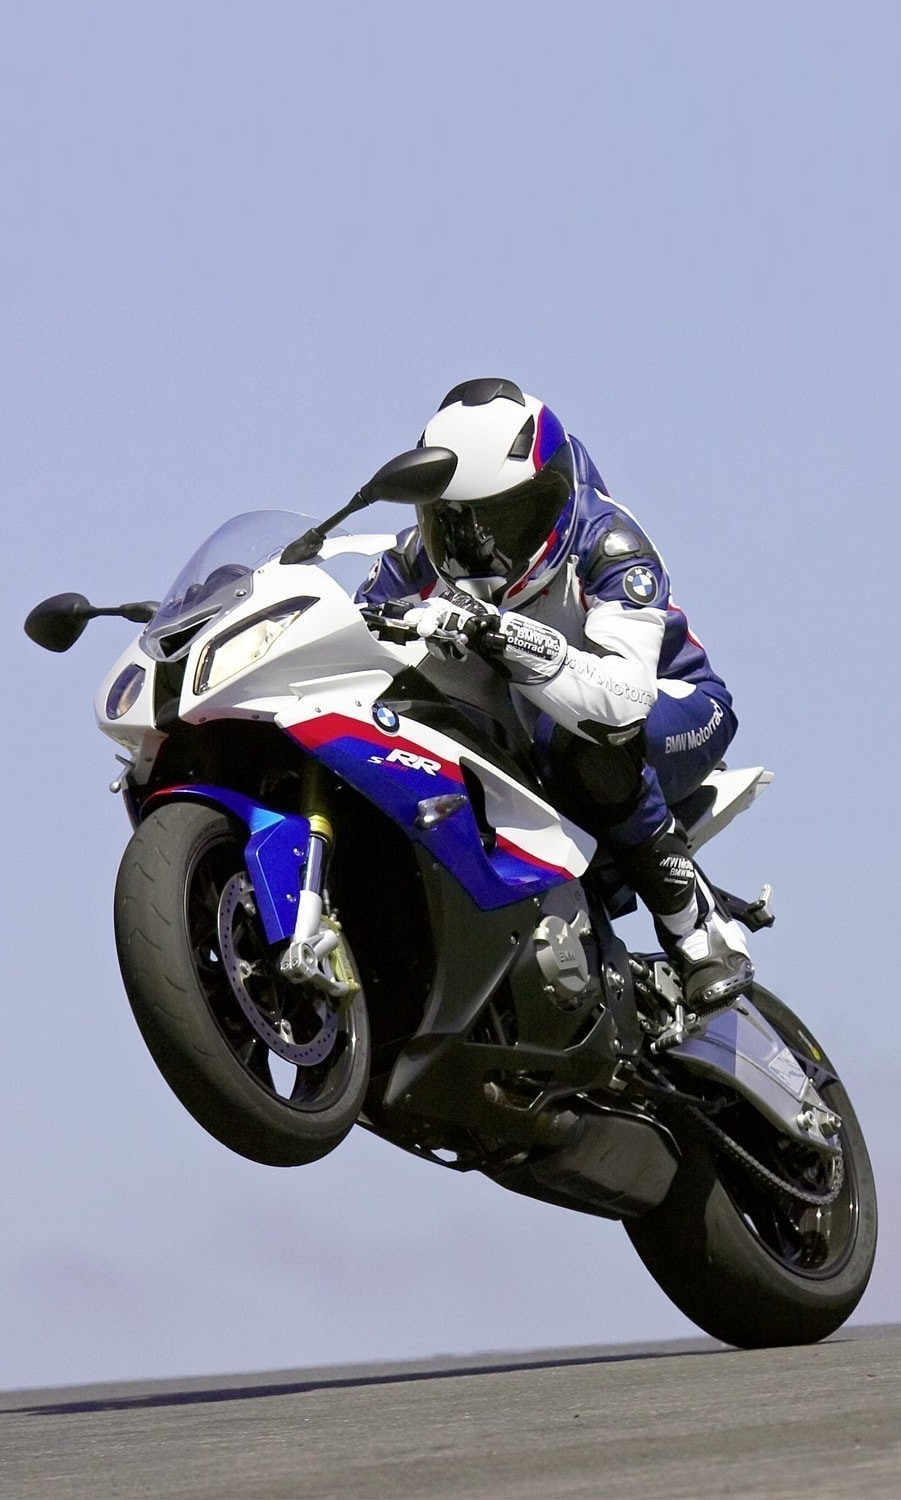 Bmw S 1000rr Superbike Hd Wallpapers Tumblr